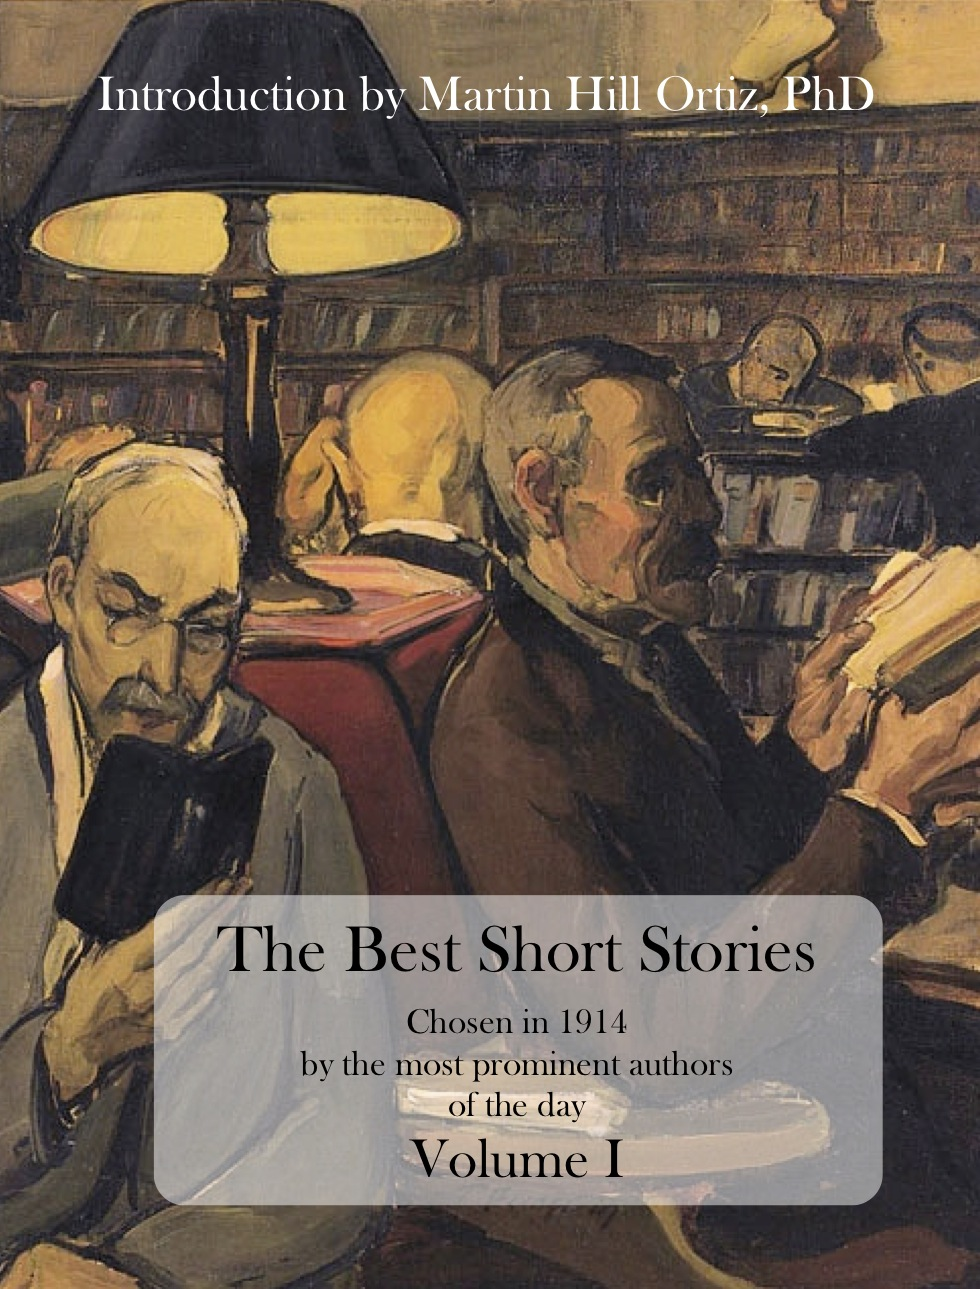 a critical survey of short stories Critical survey of short fiction (critical survey (salem press)): 9781587657894: reference books @ amazoncom  story time just got better with prime book box, a.